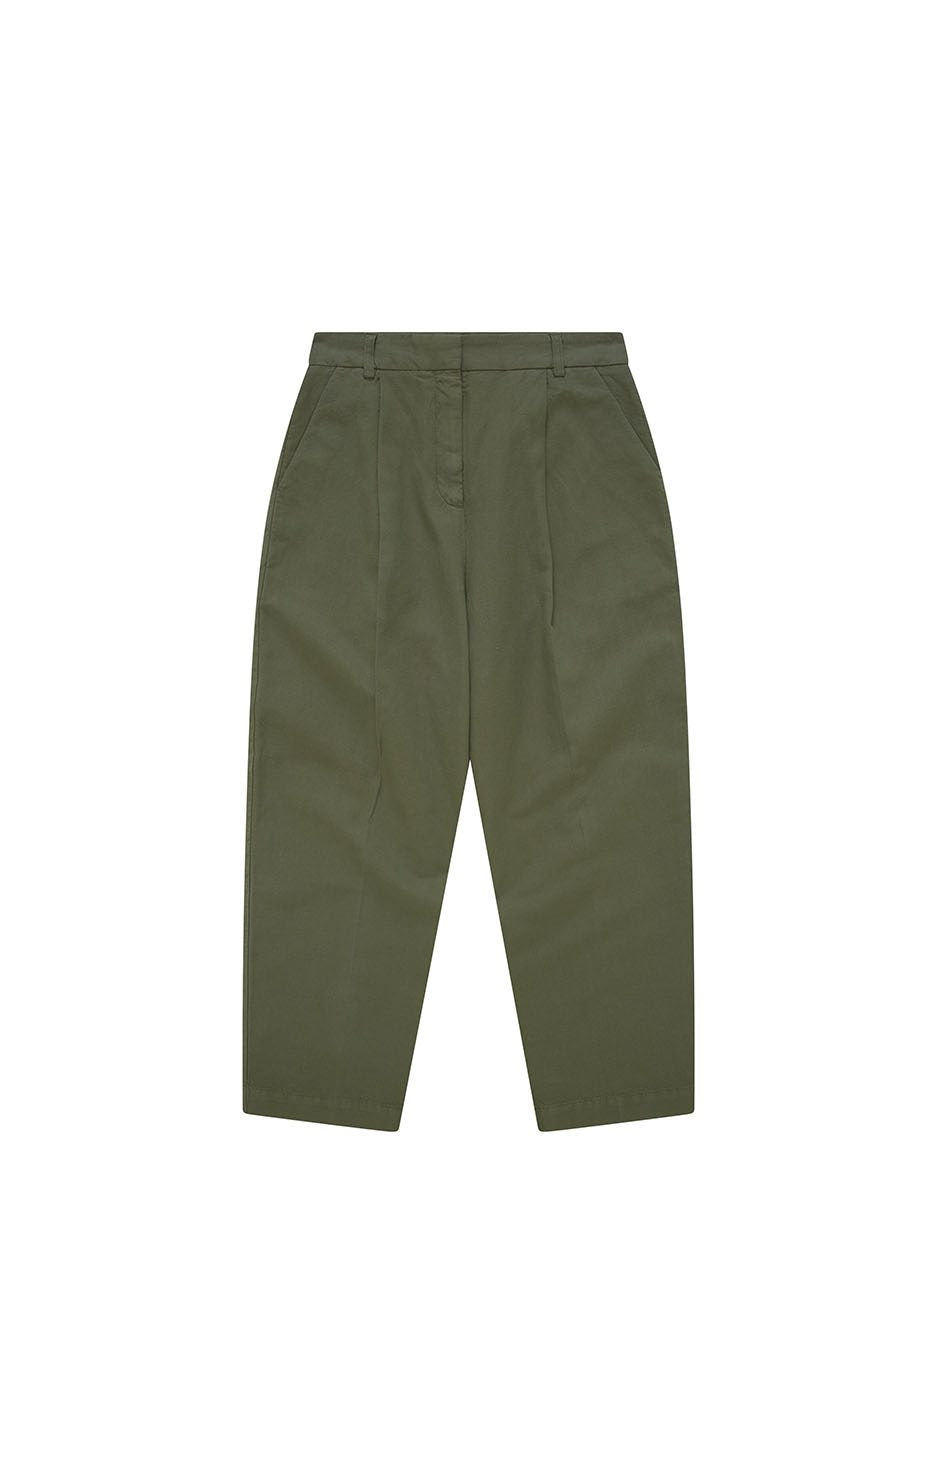 Market Pants in Olive